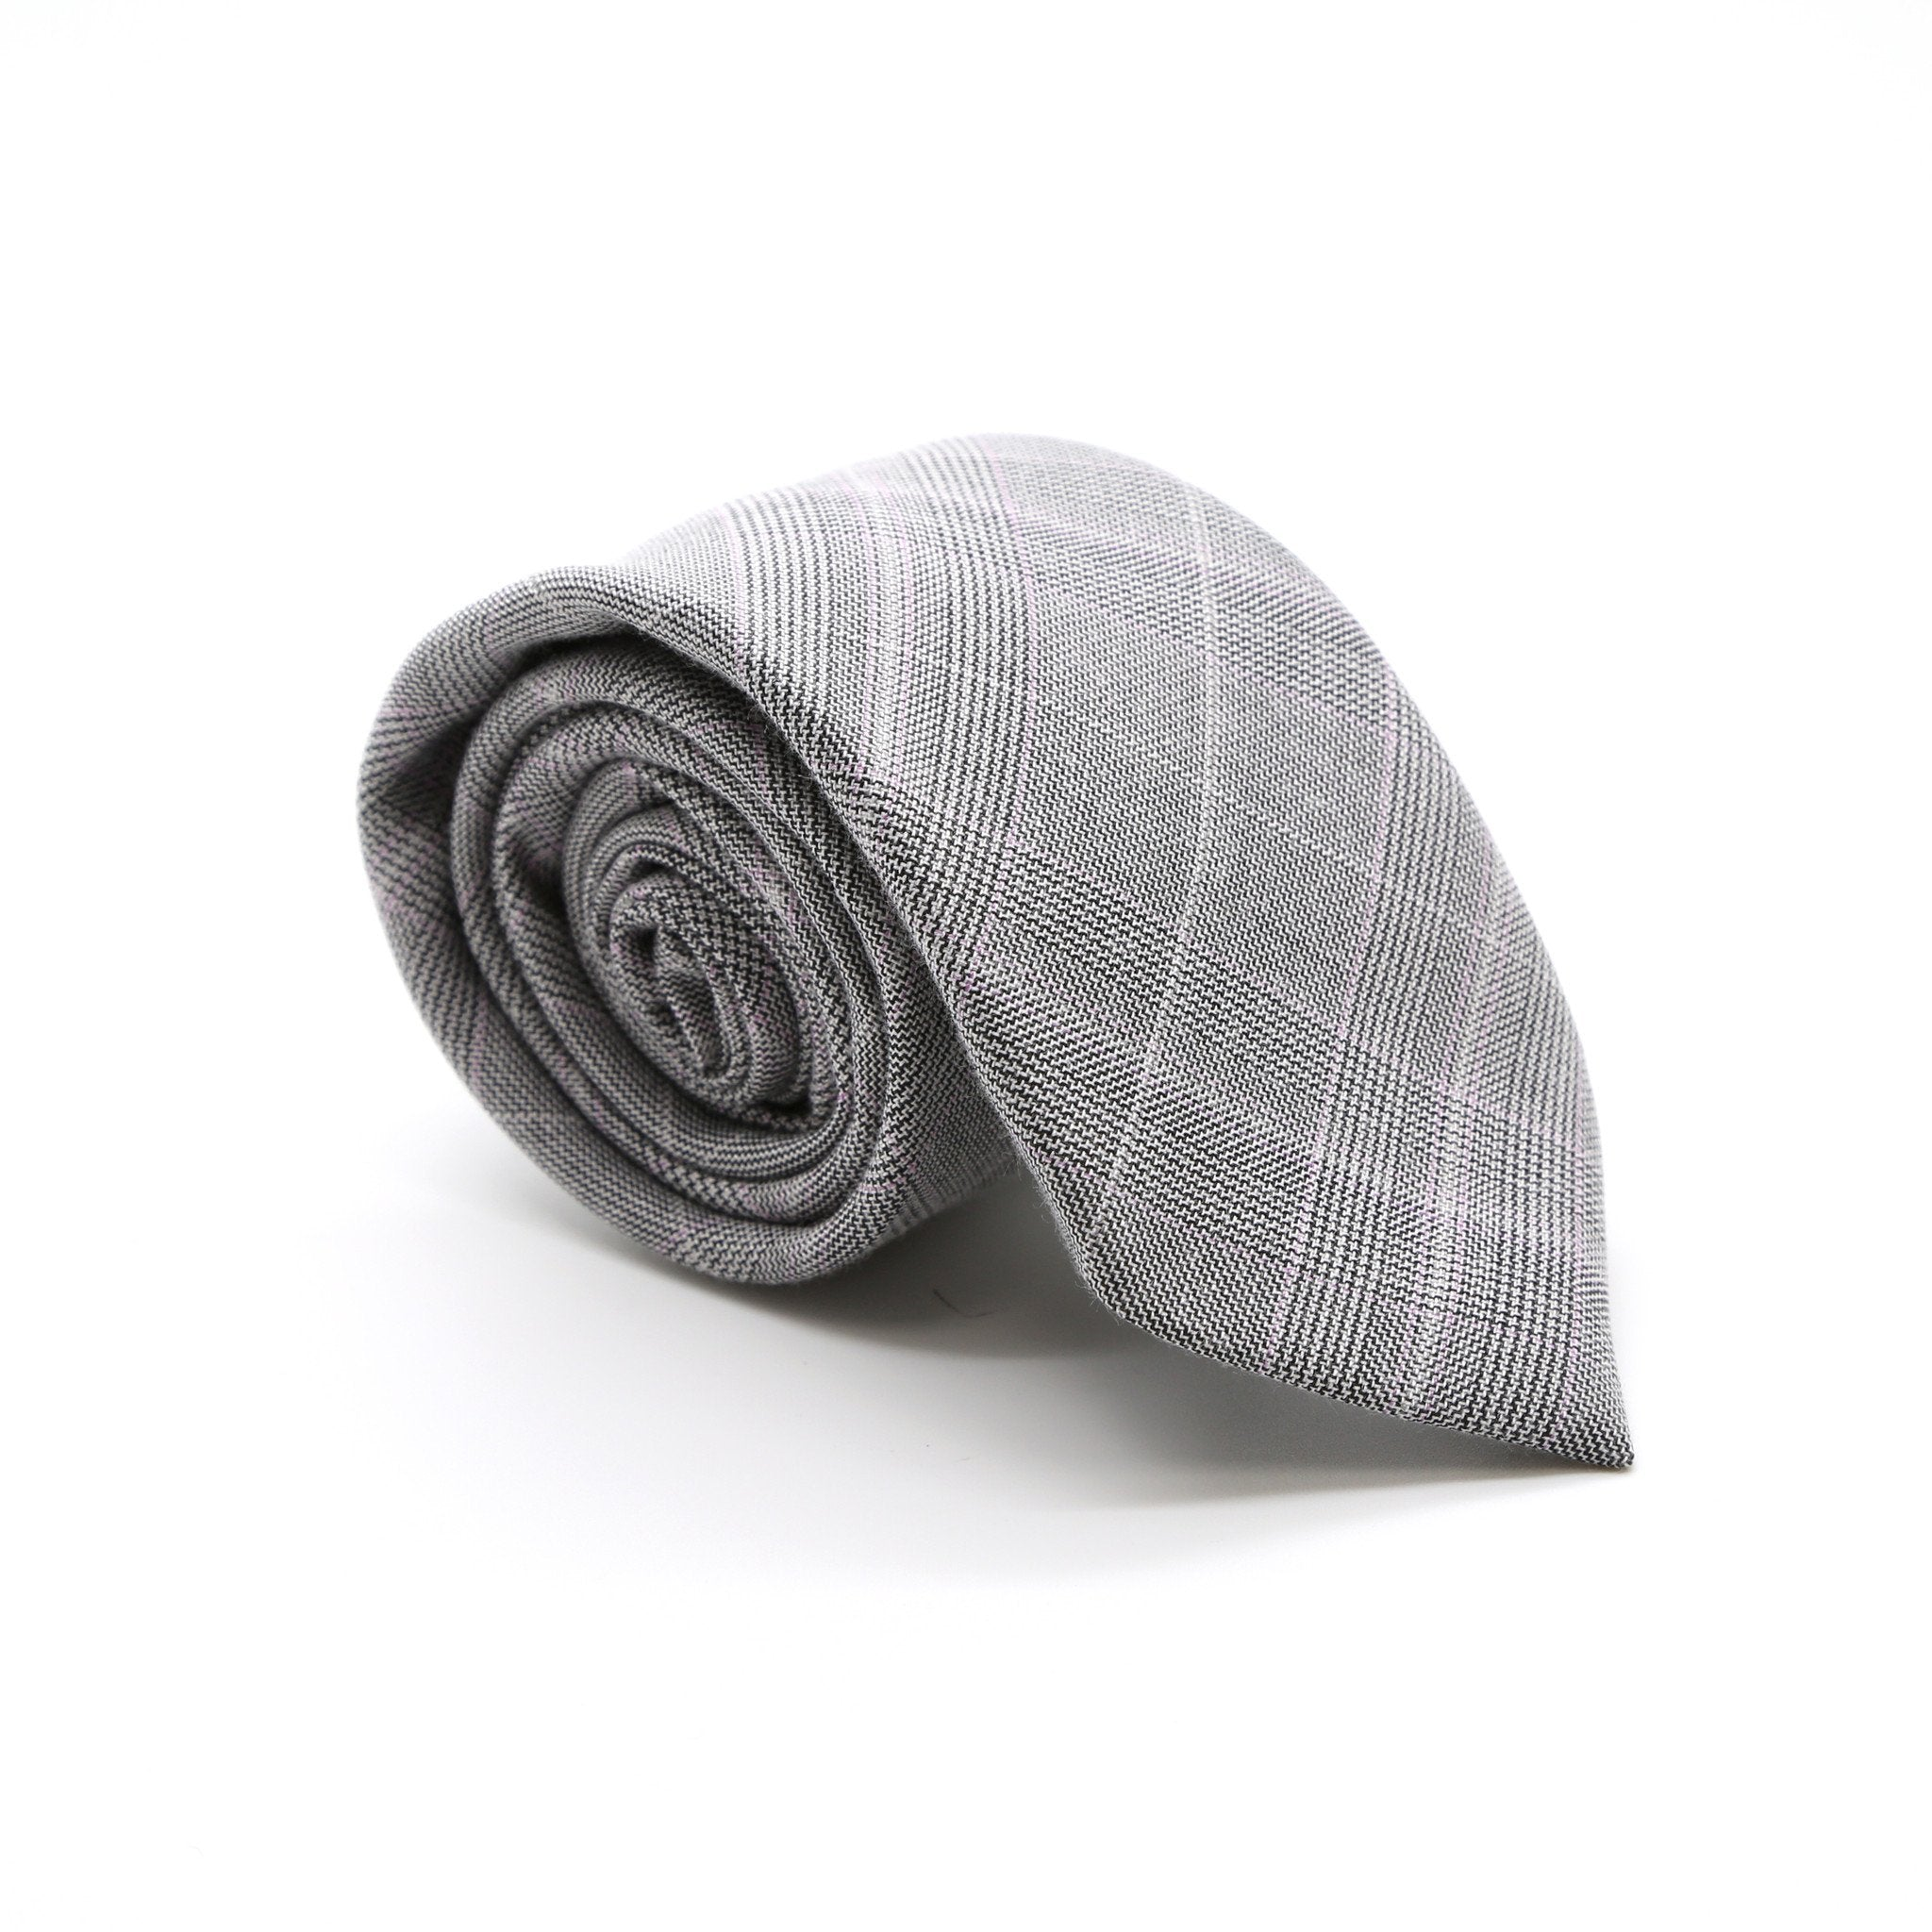 Slim Grey and Lavender Plaid Neckties & Handkerchief - Giorgio's Menswear